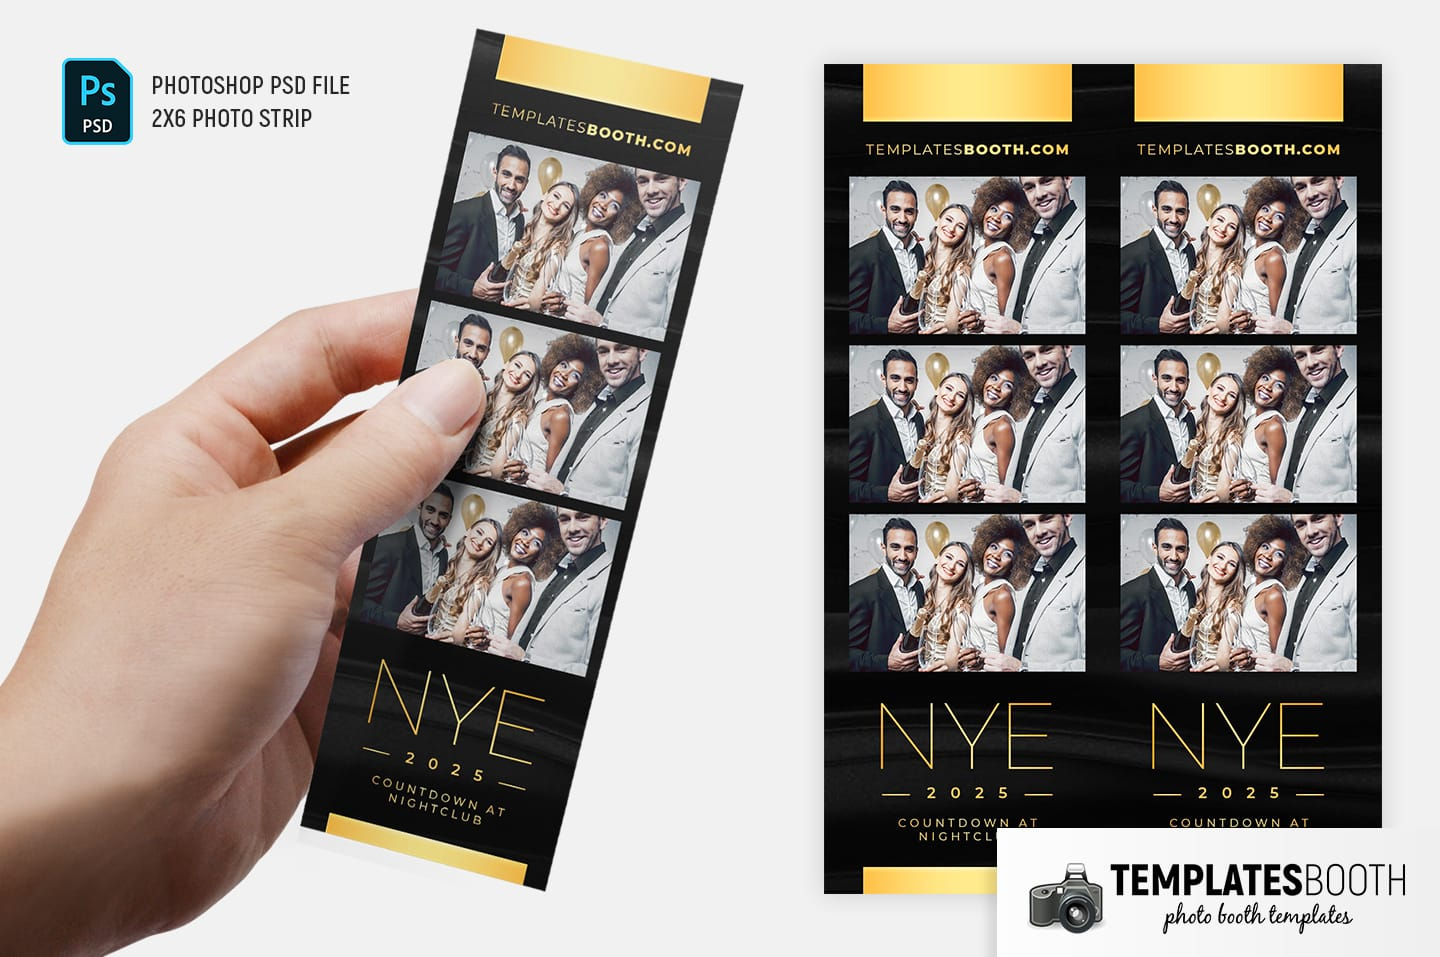 New Year's Eve Photo Booth Template (2x6 photo strip)